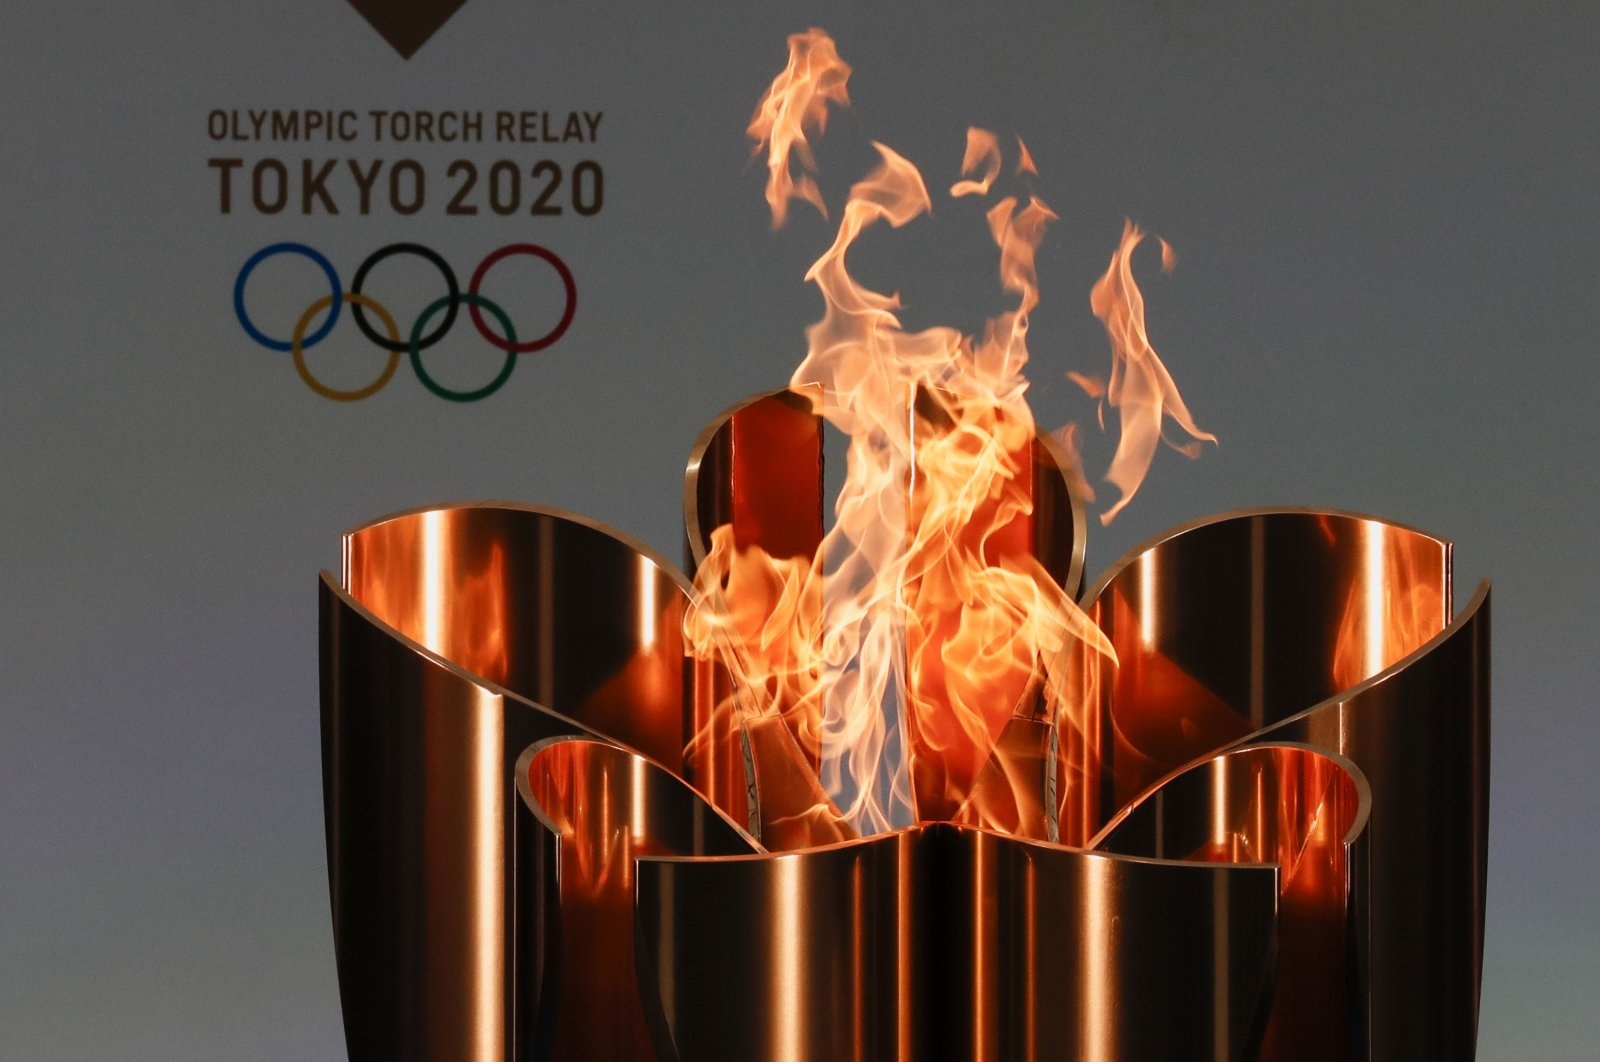 The celebration cauldron is seen lit on the first day of the Tokyo 2020 Olympic torch relay in Naraha, Fukushima prefecture, northeastern Japan, March 25, 2021. (AP Photo)